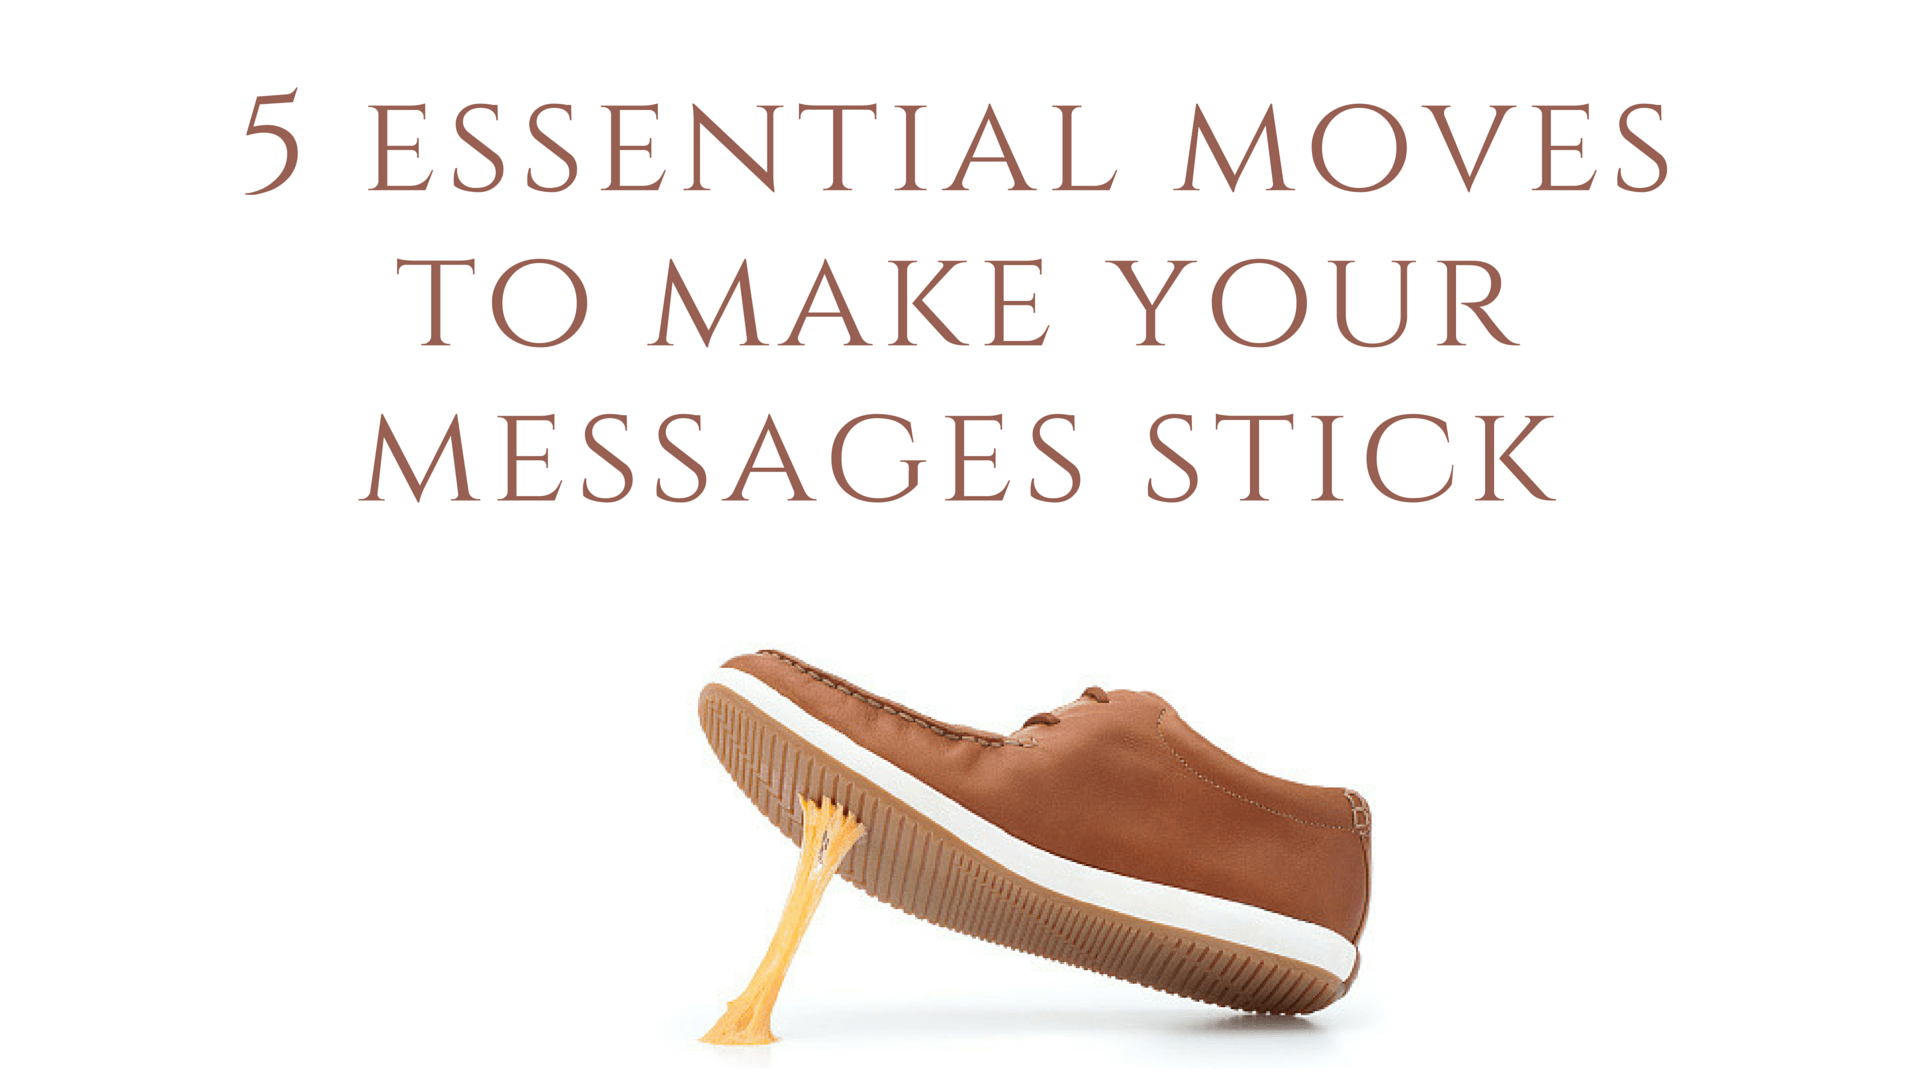 5 Essential Moves to Make Your Messages Stick